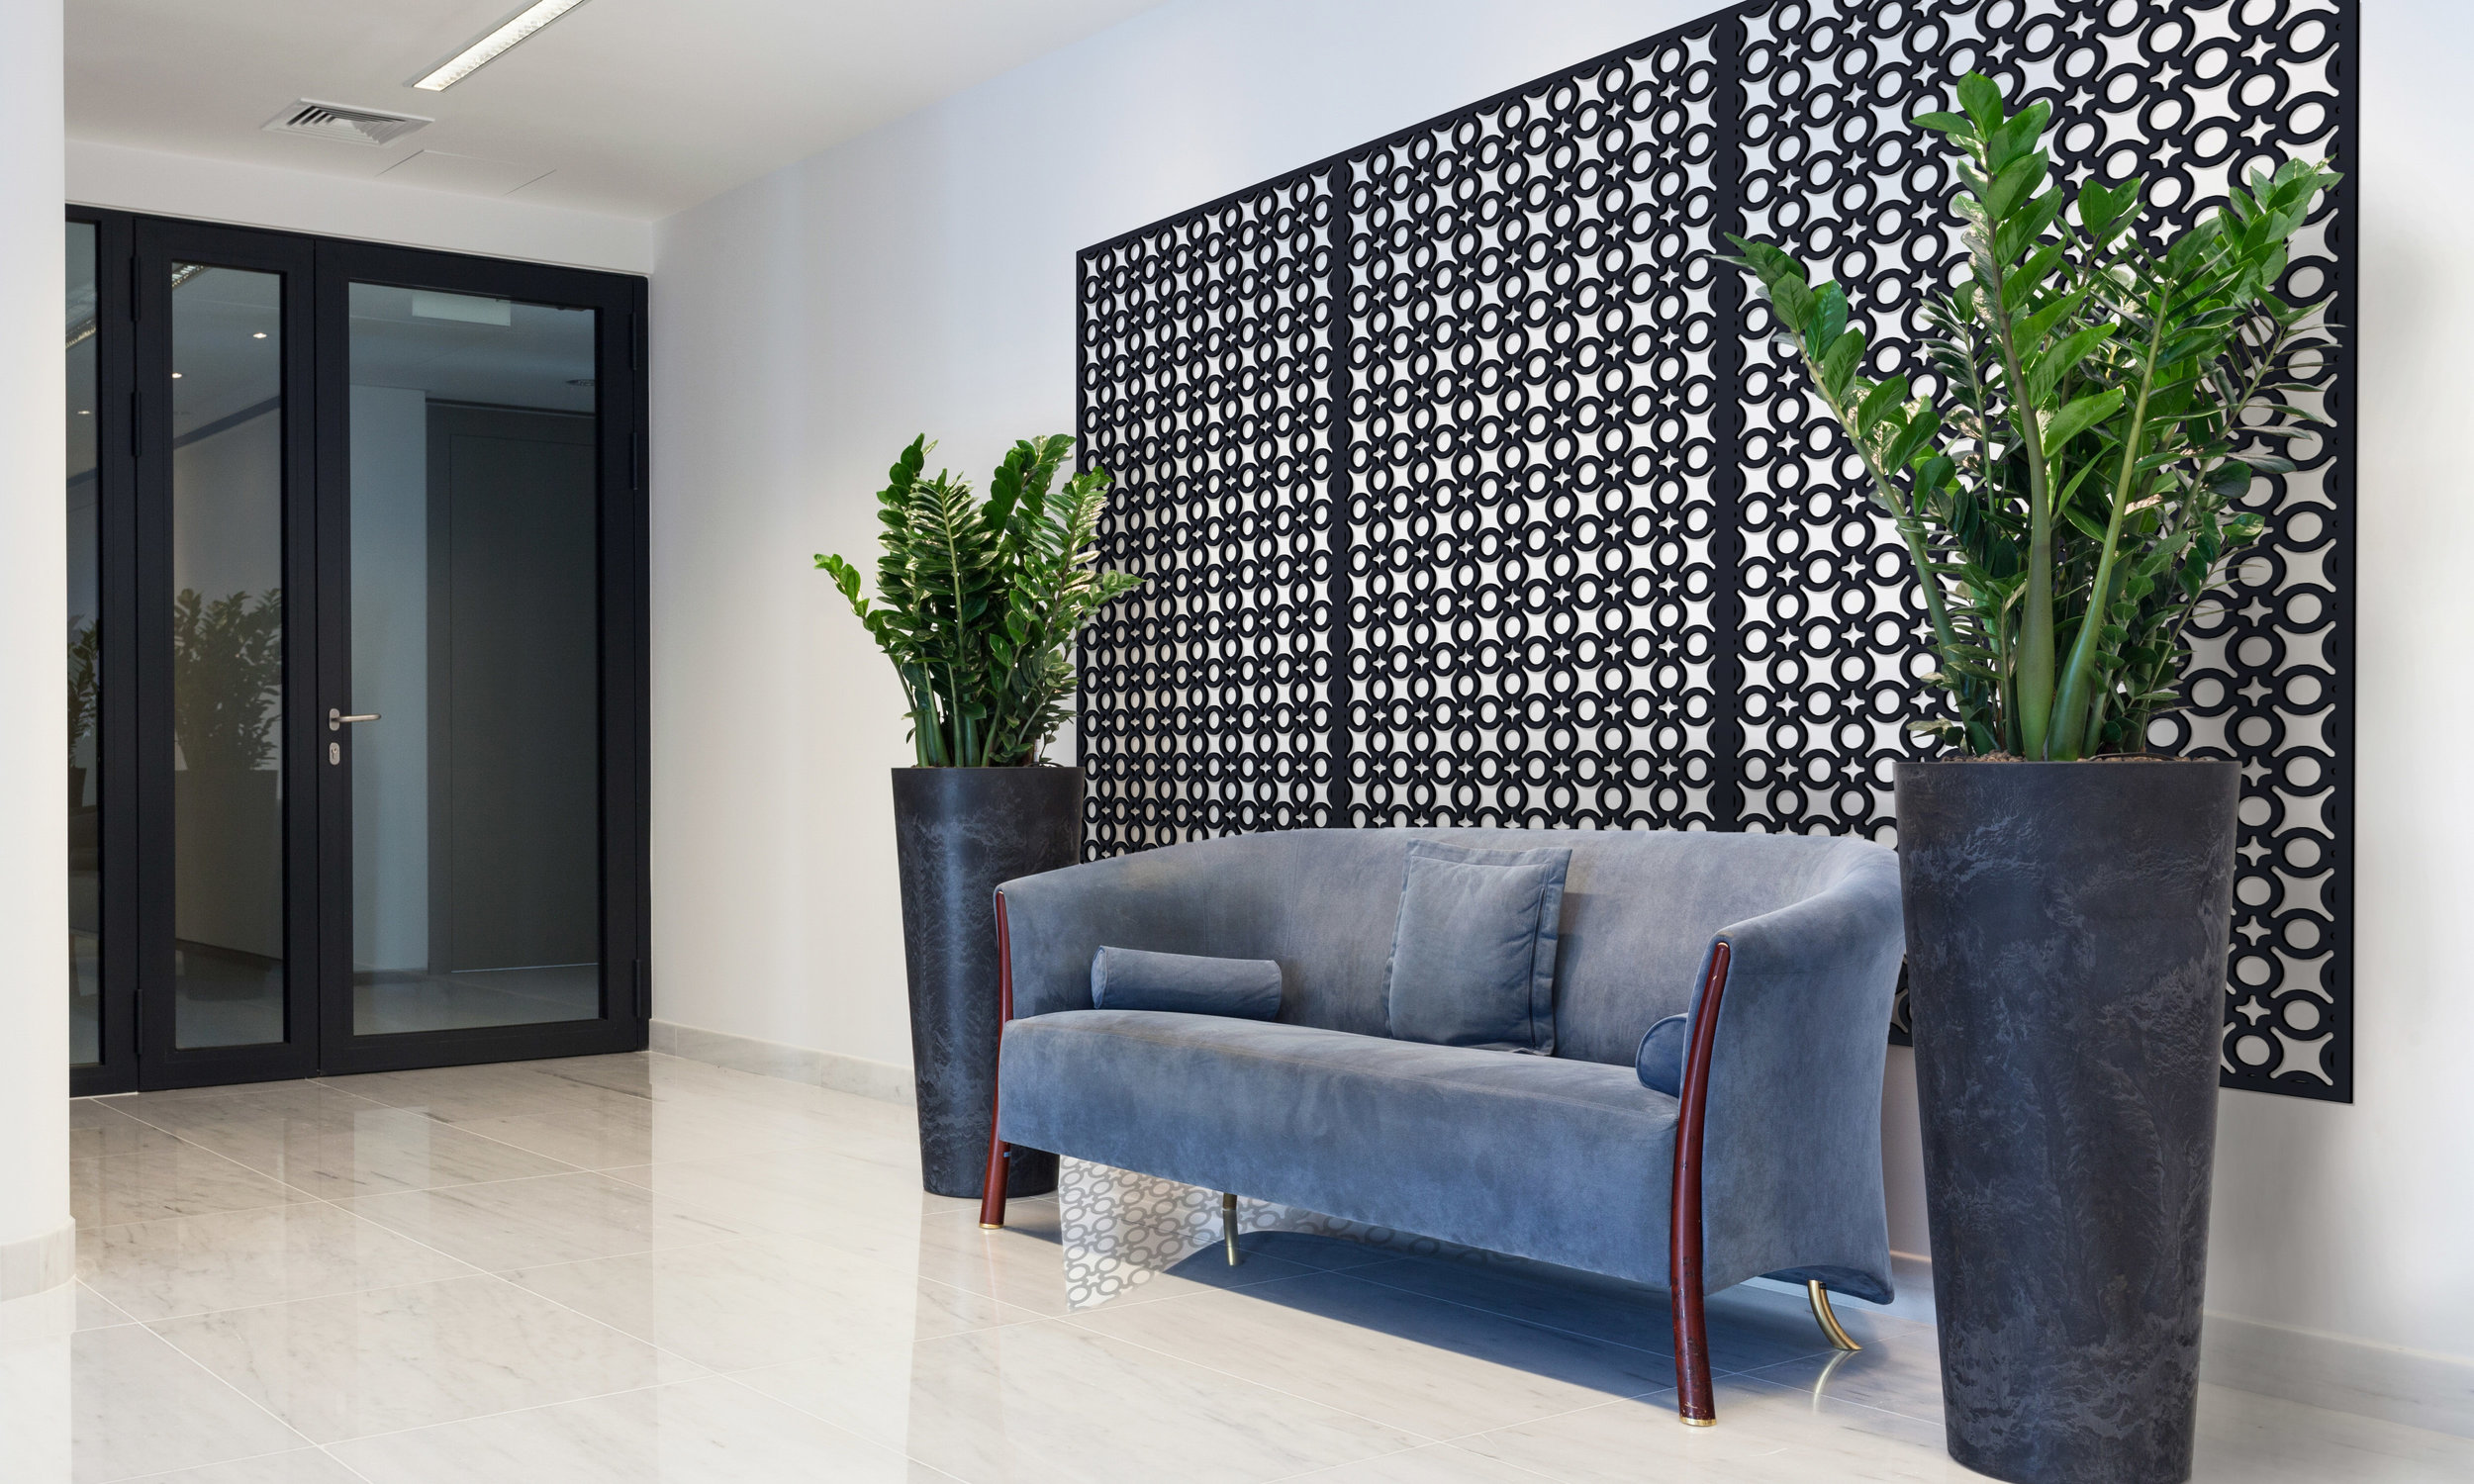 Installation Rendering B   Concrete Block decorative office wall panel - painted